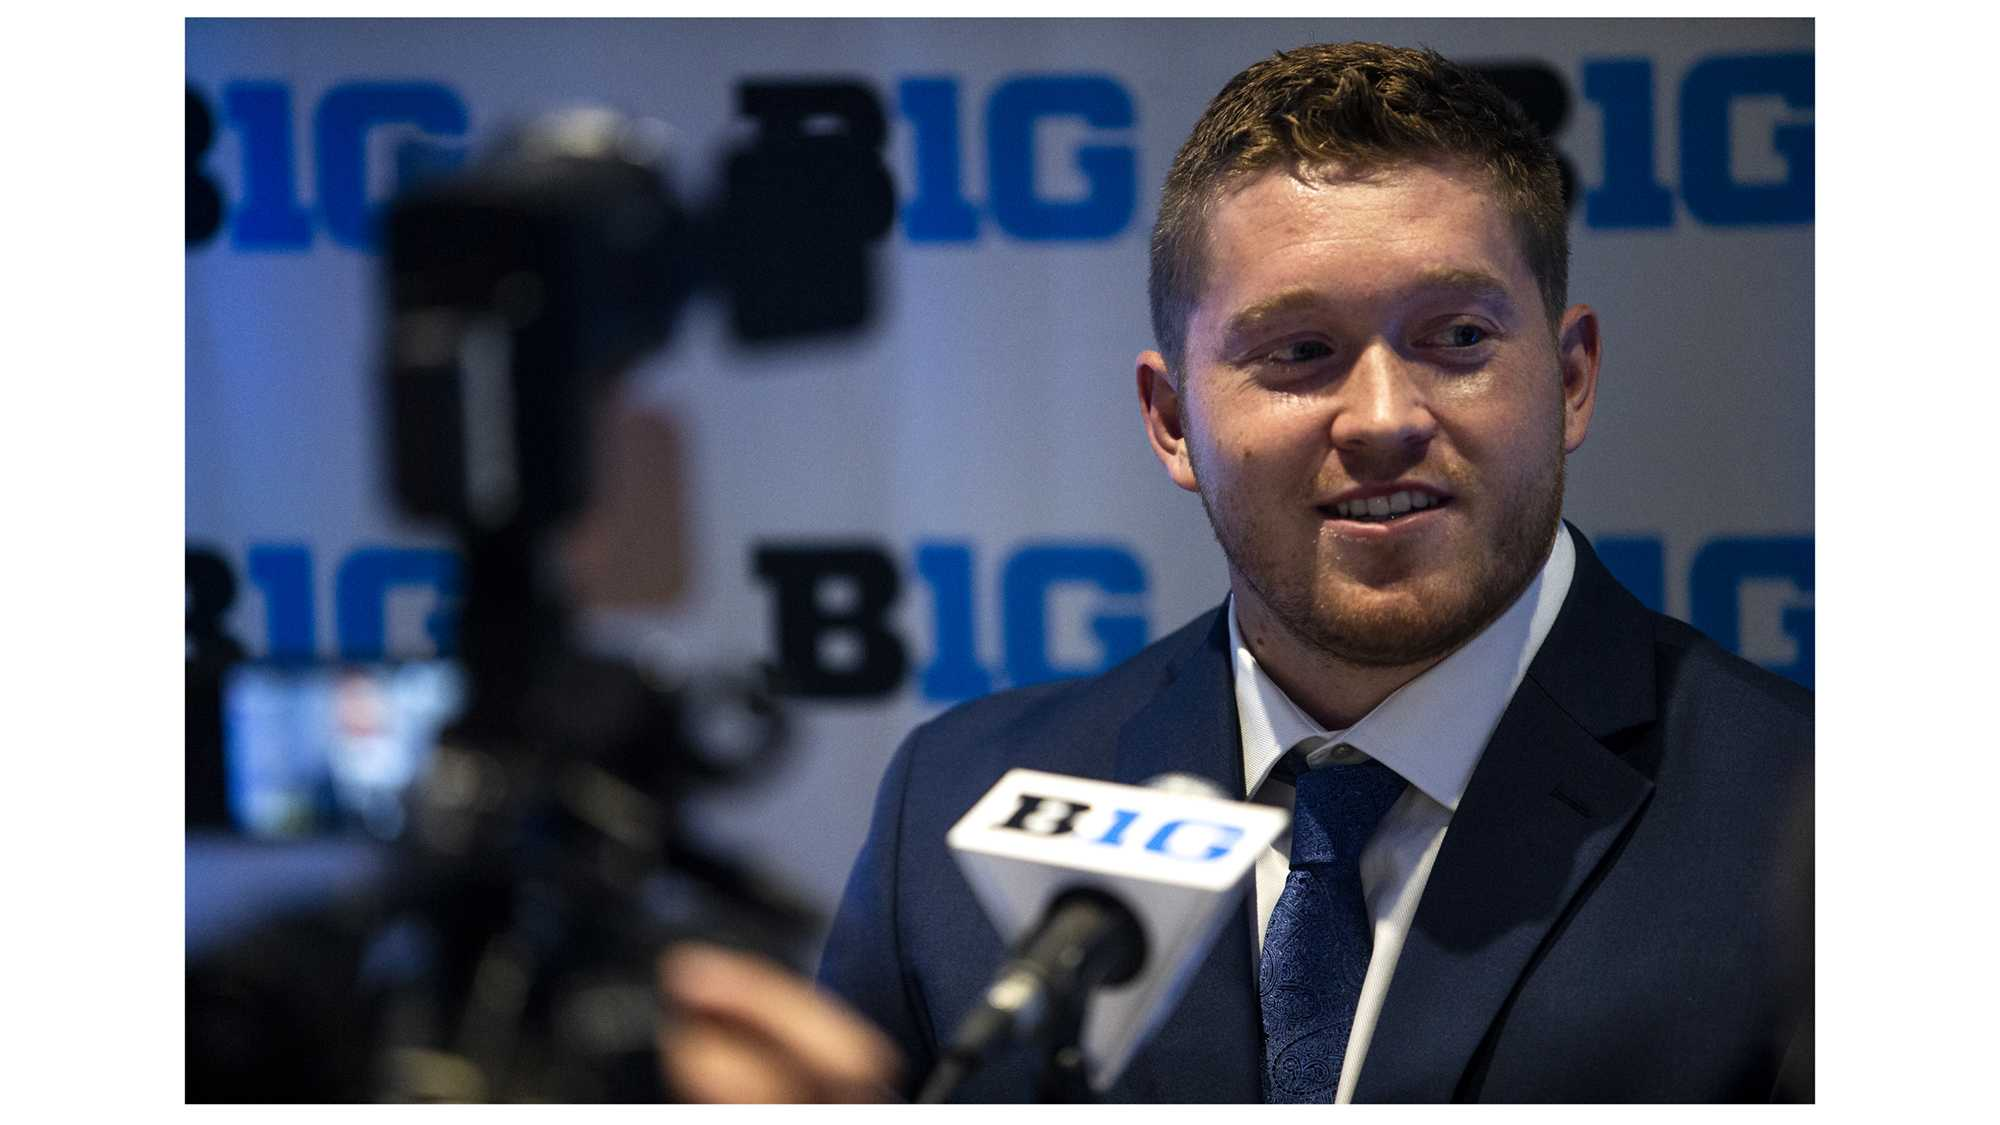 Iowa defensive end Parker Hesse addresses the media during Big Ten Football Media Days in Chicago on Tuesday, July 24, 2018. (Nick Rohlman/The Daily Iowan)